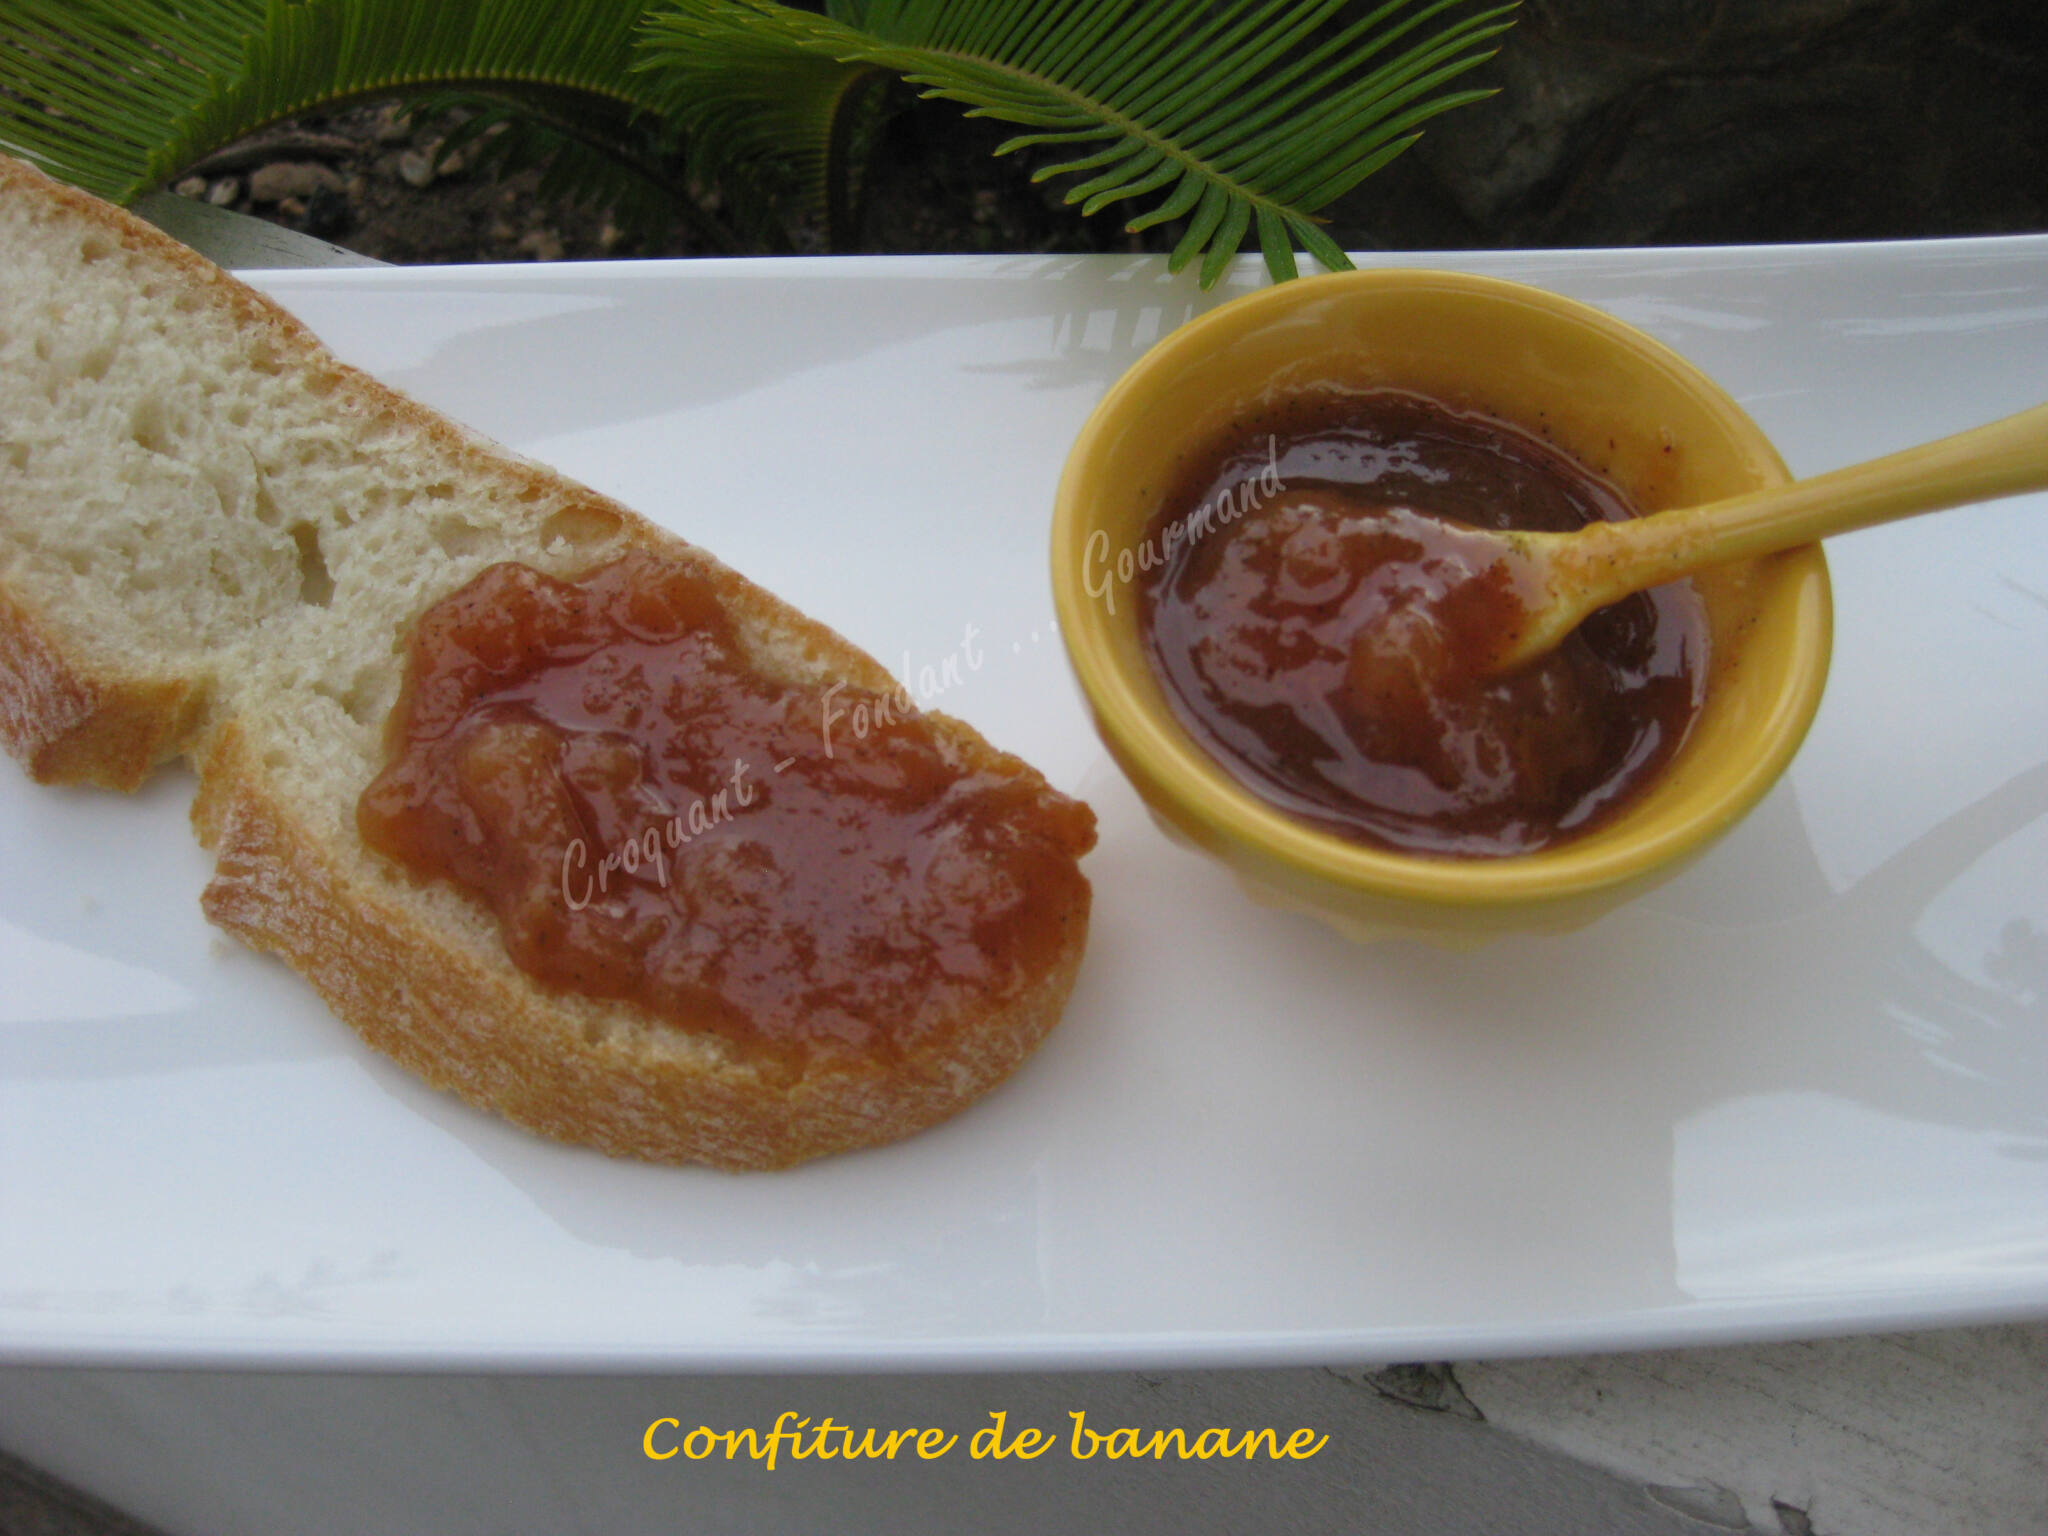 confiture de banane img 6452 croquant fondant gourmand. Black Bedroom Furniture Sets. Home Design Ideas